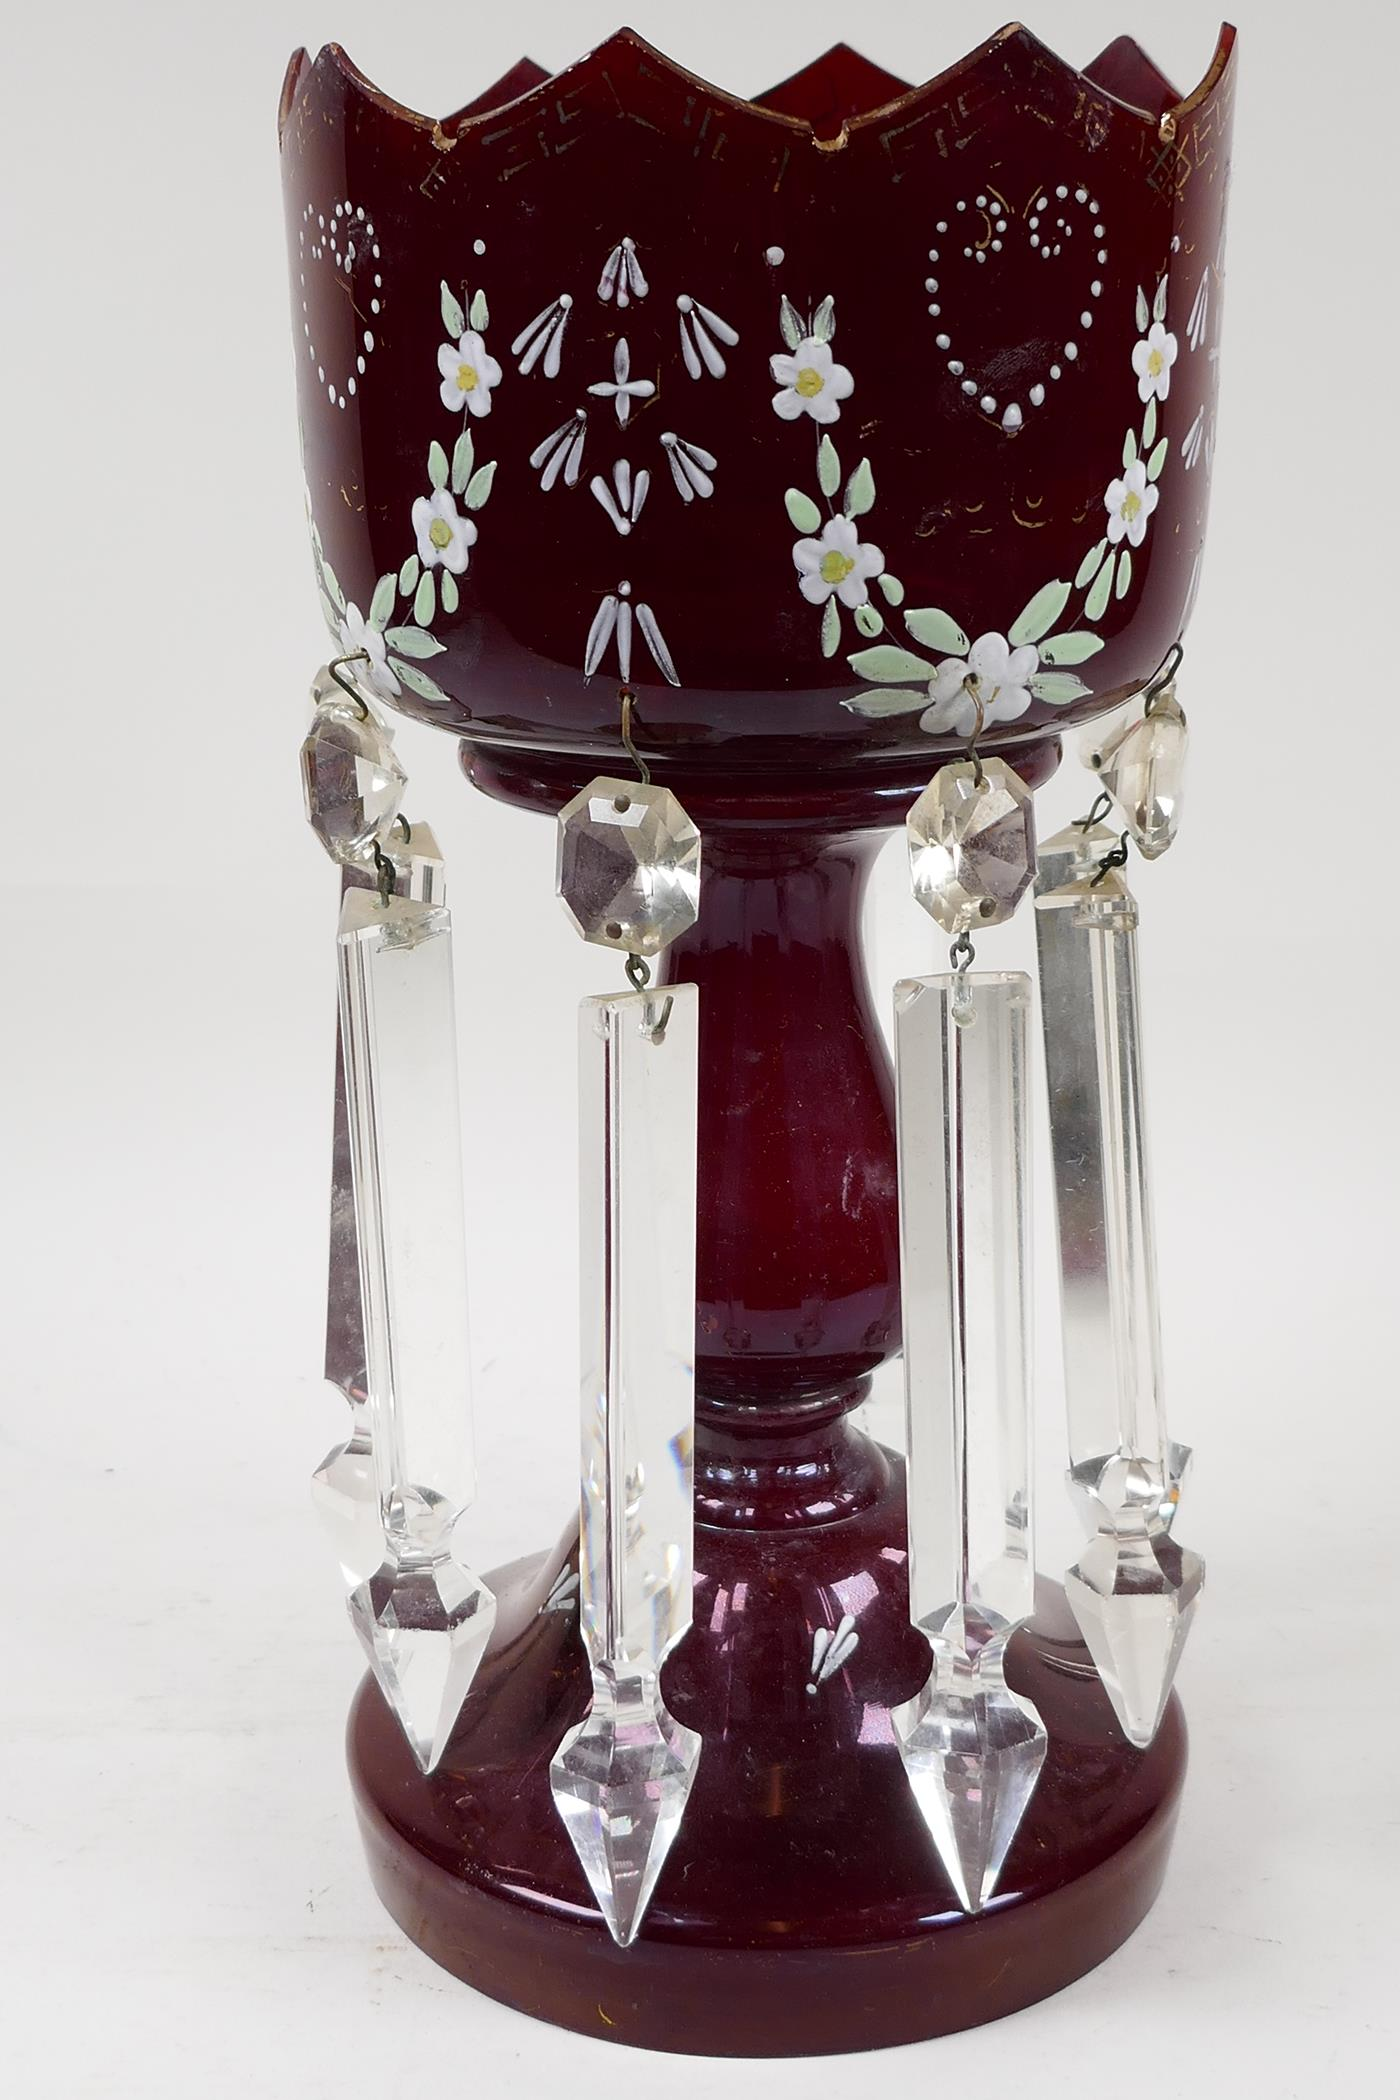 A Victorian ruby glass table lustre with crystal drops, and painted with flowers, one drop missing, - Image 2 of 3